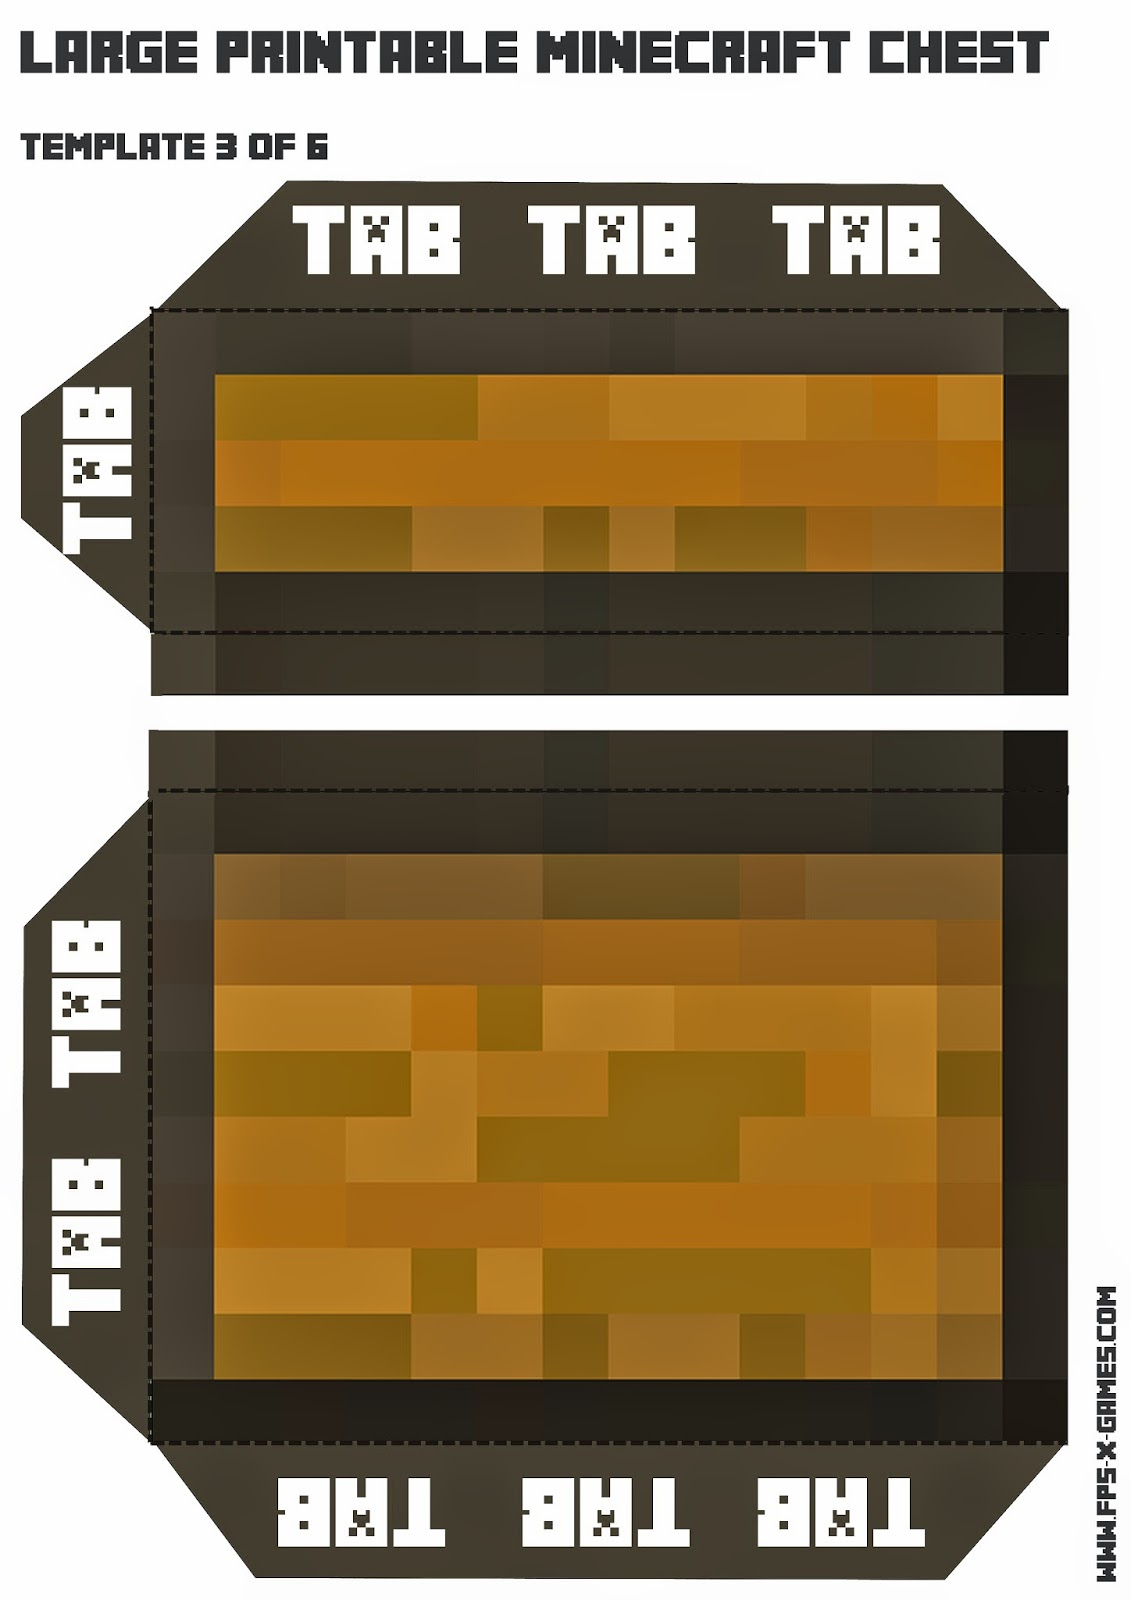 Create your own large Minecraft chest, template 3 of 6